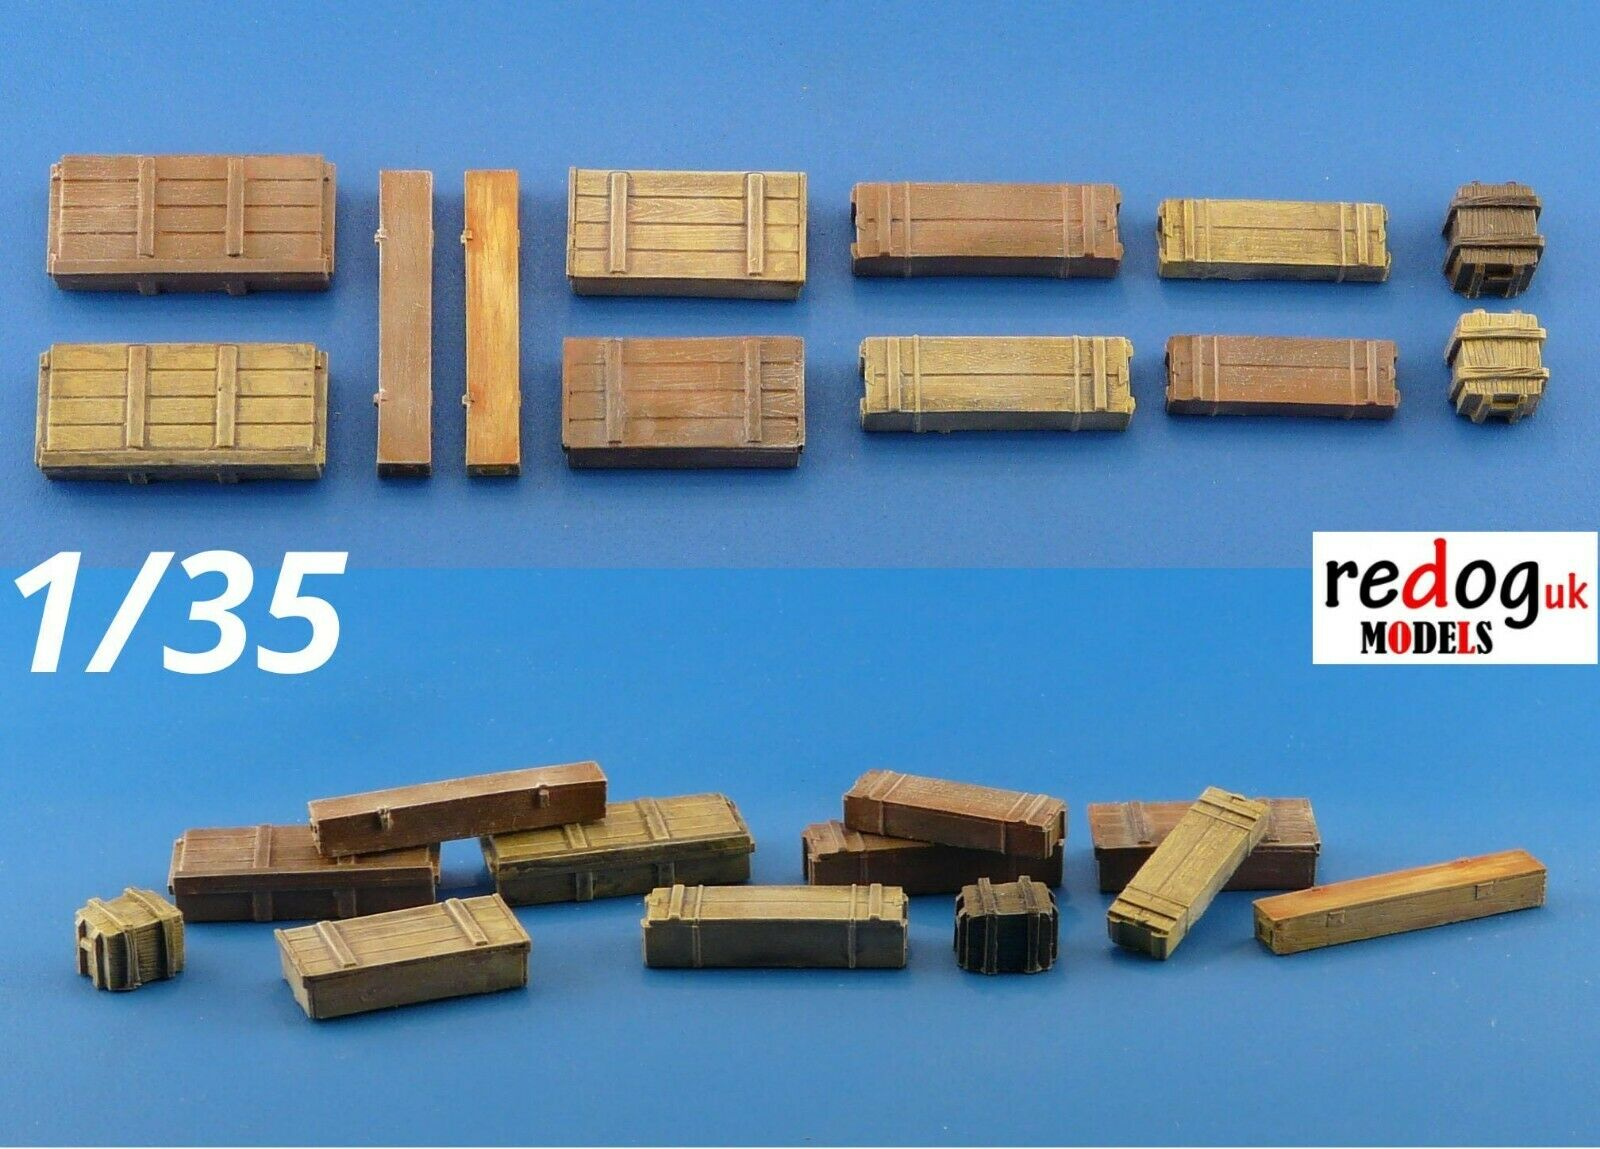 1/35 Allied and Germans Ammunition Crates Scale Modeling Military Stowage - 12 pieces B5 - redoguk